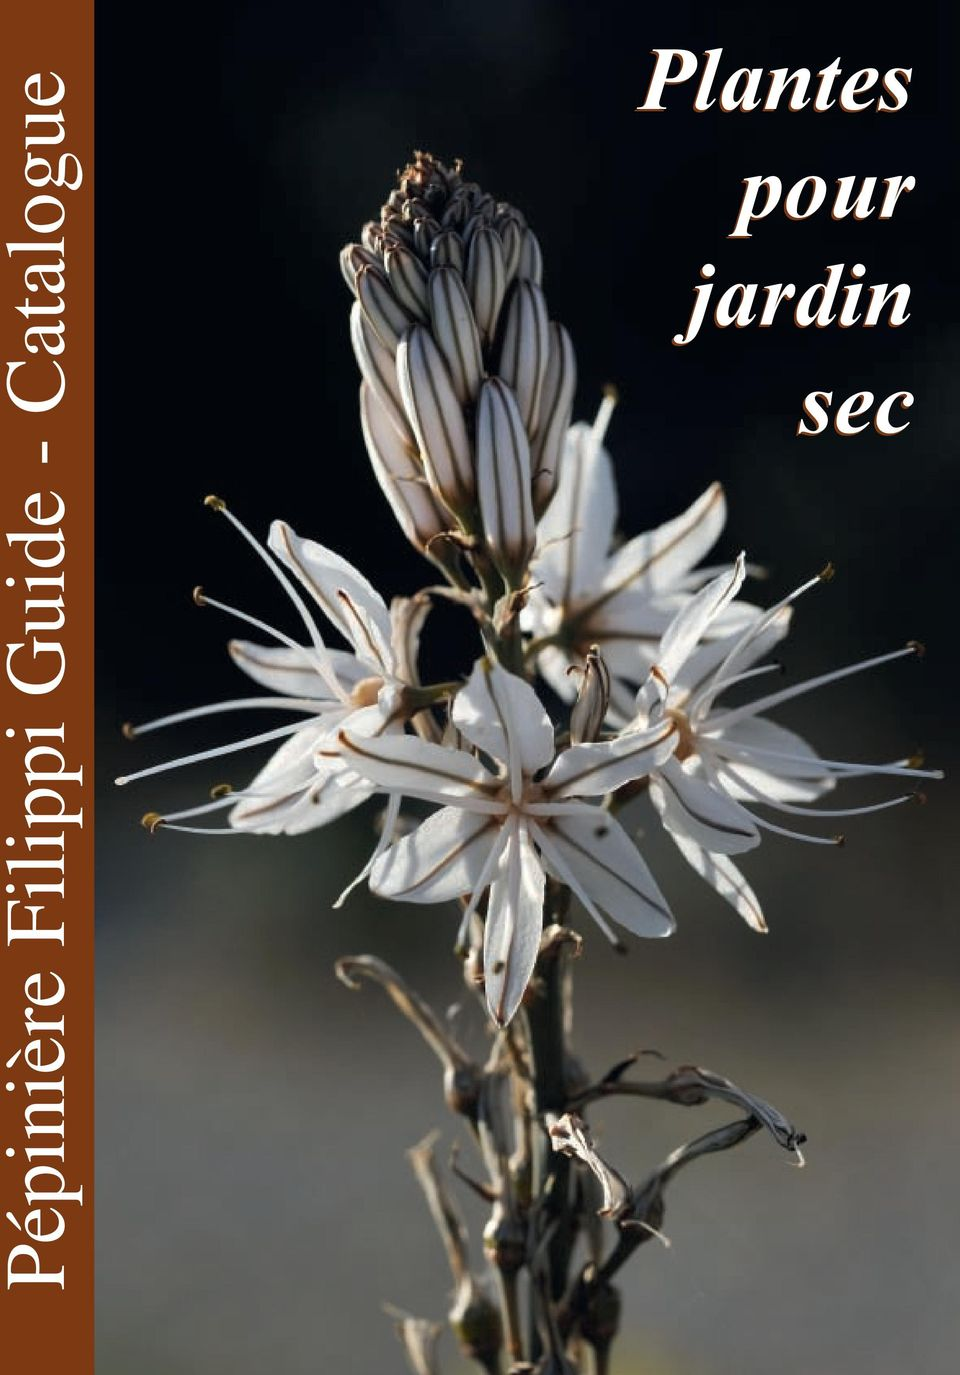 P pini re filippi guide catalogue plantes pour jardin for Catalogue plantes